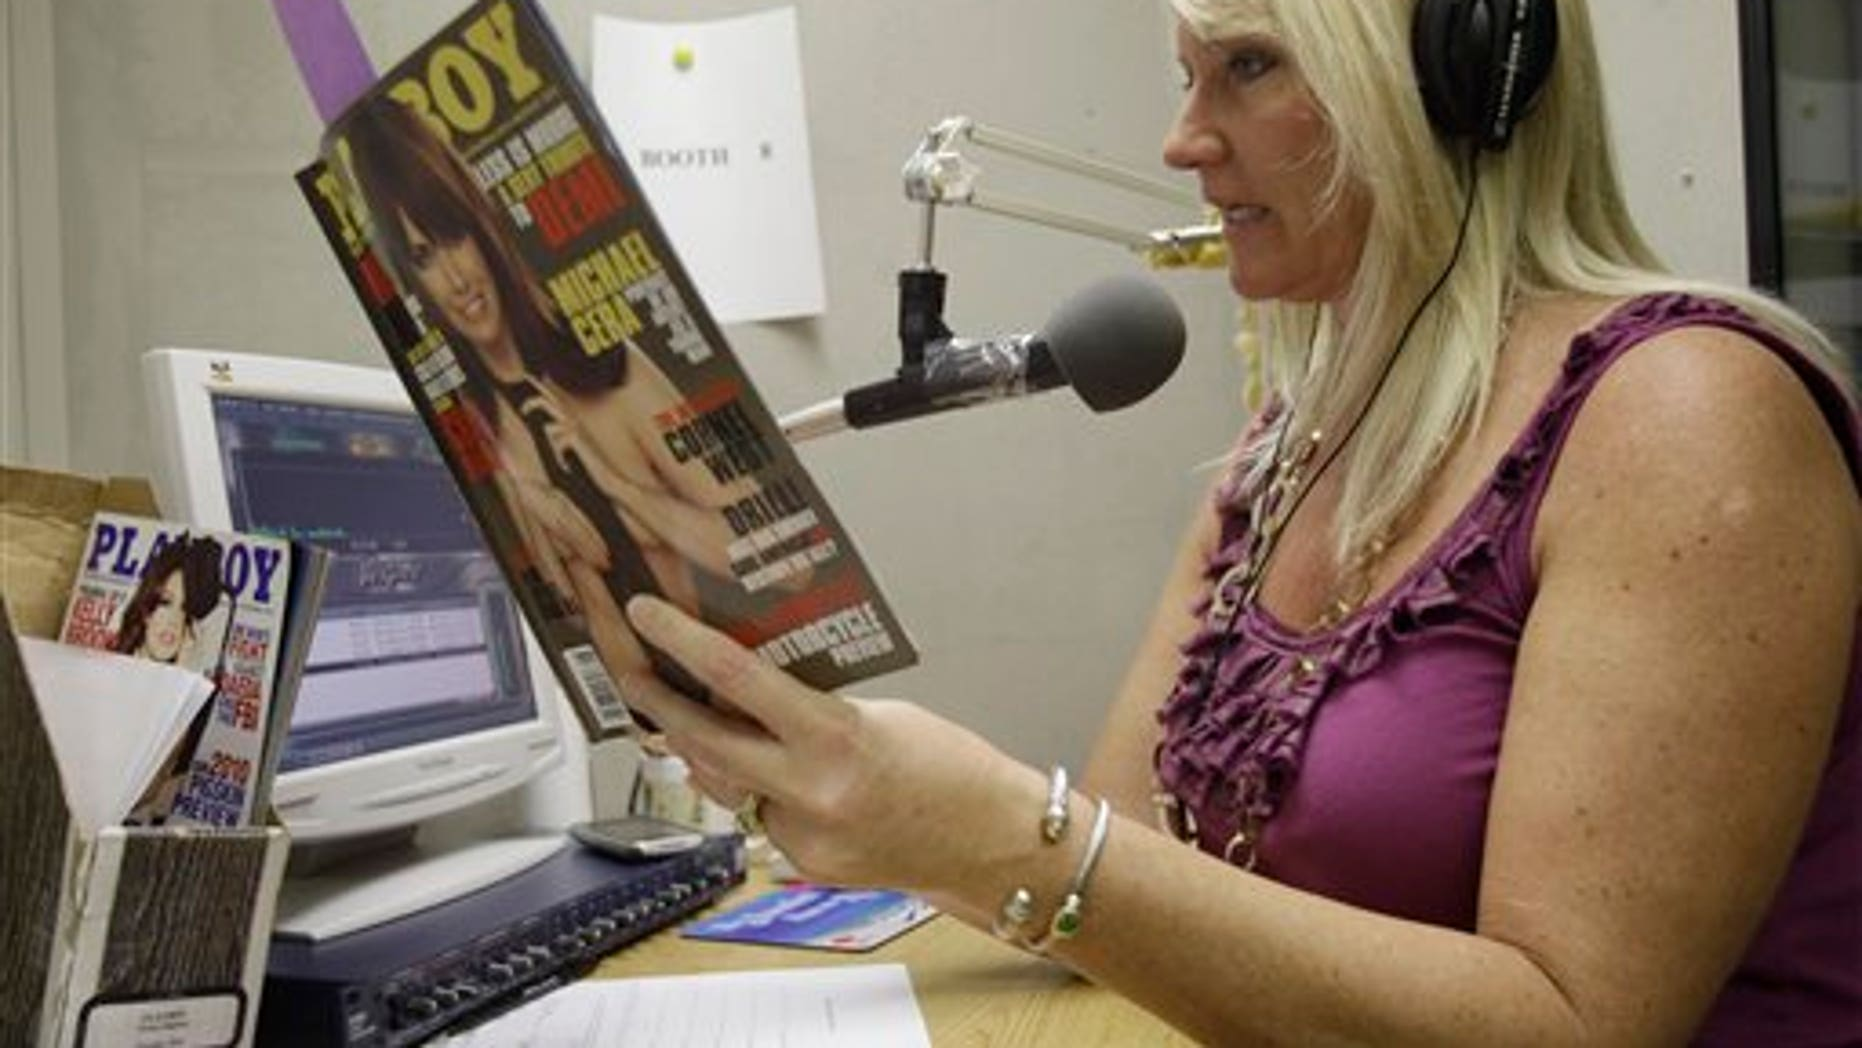 Suzi Hanks sits in a tiny sound booth demonstrating how she describes a Playboy magazine. (AP)